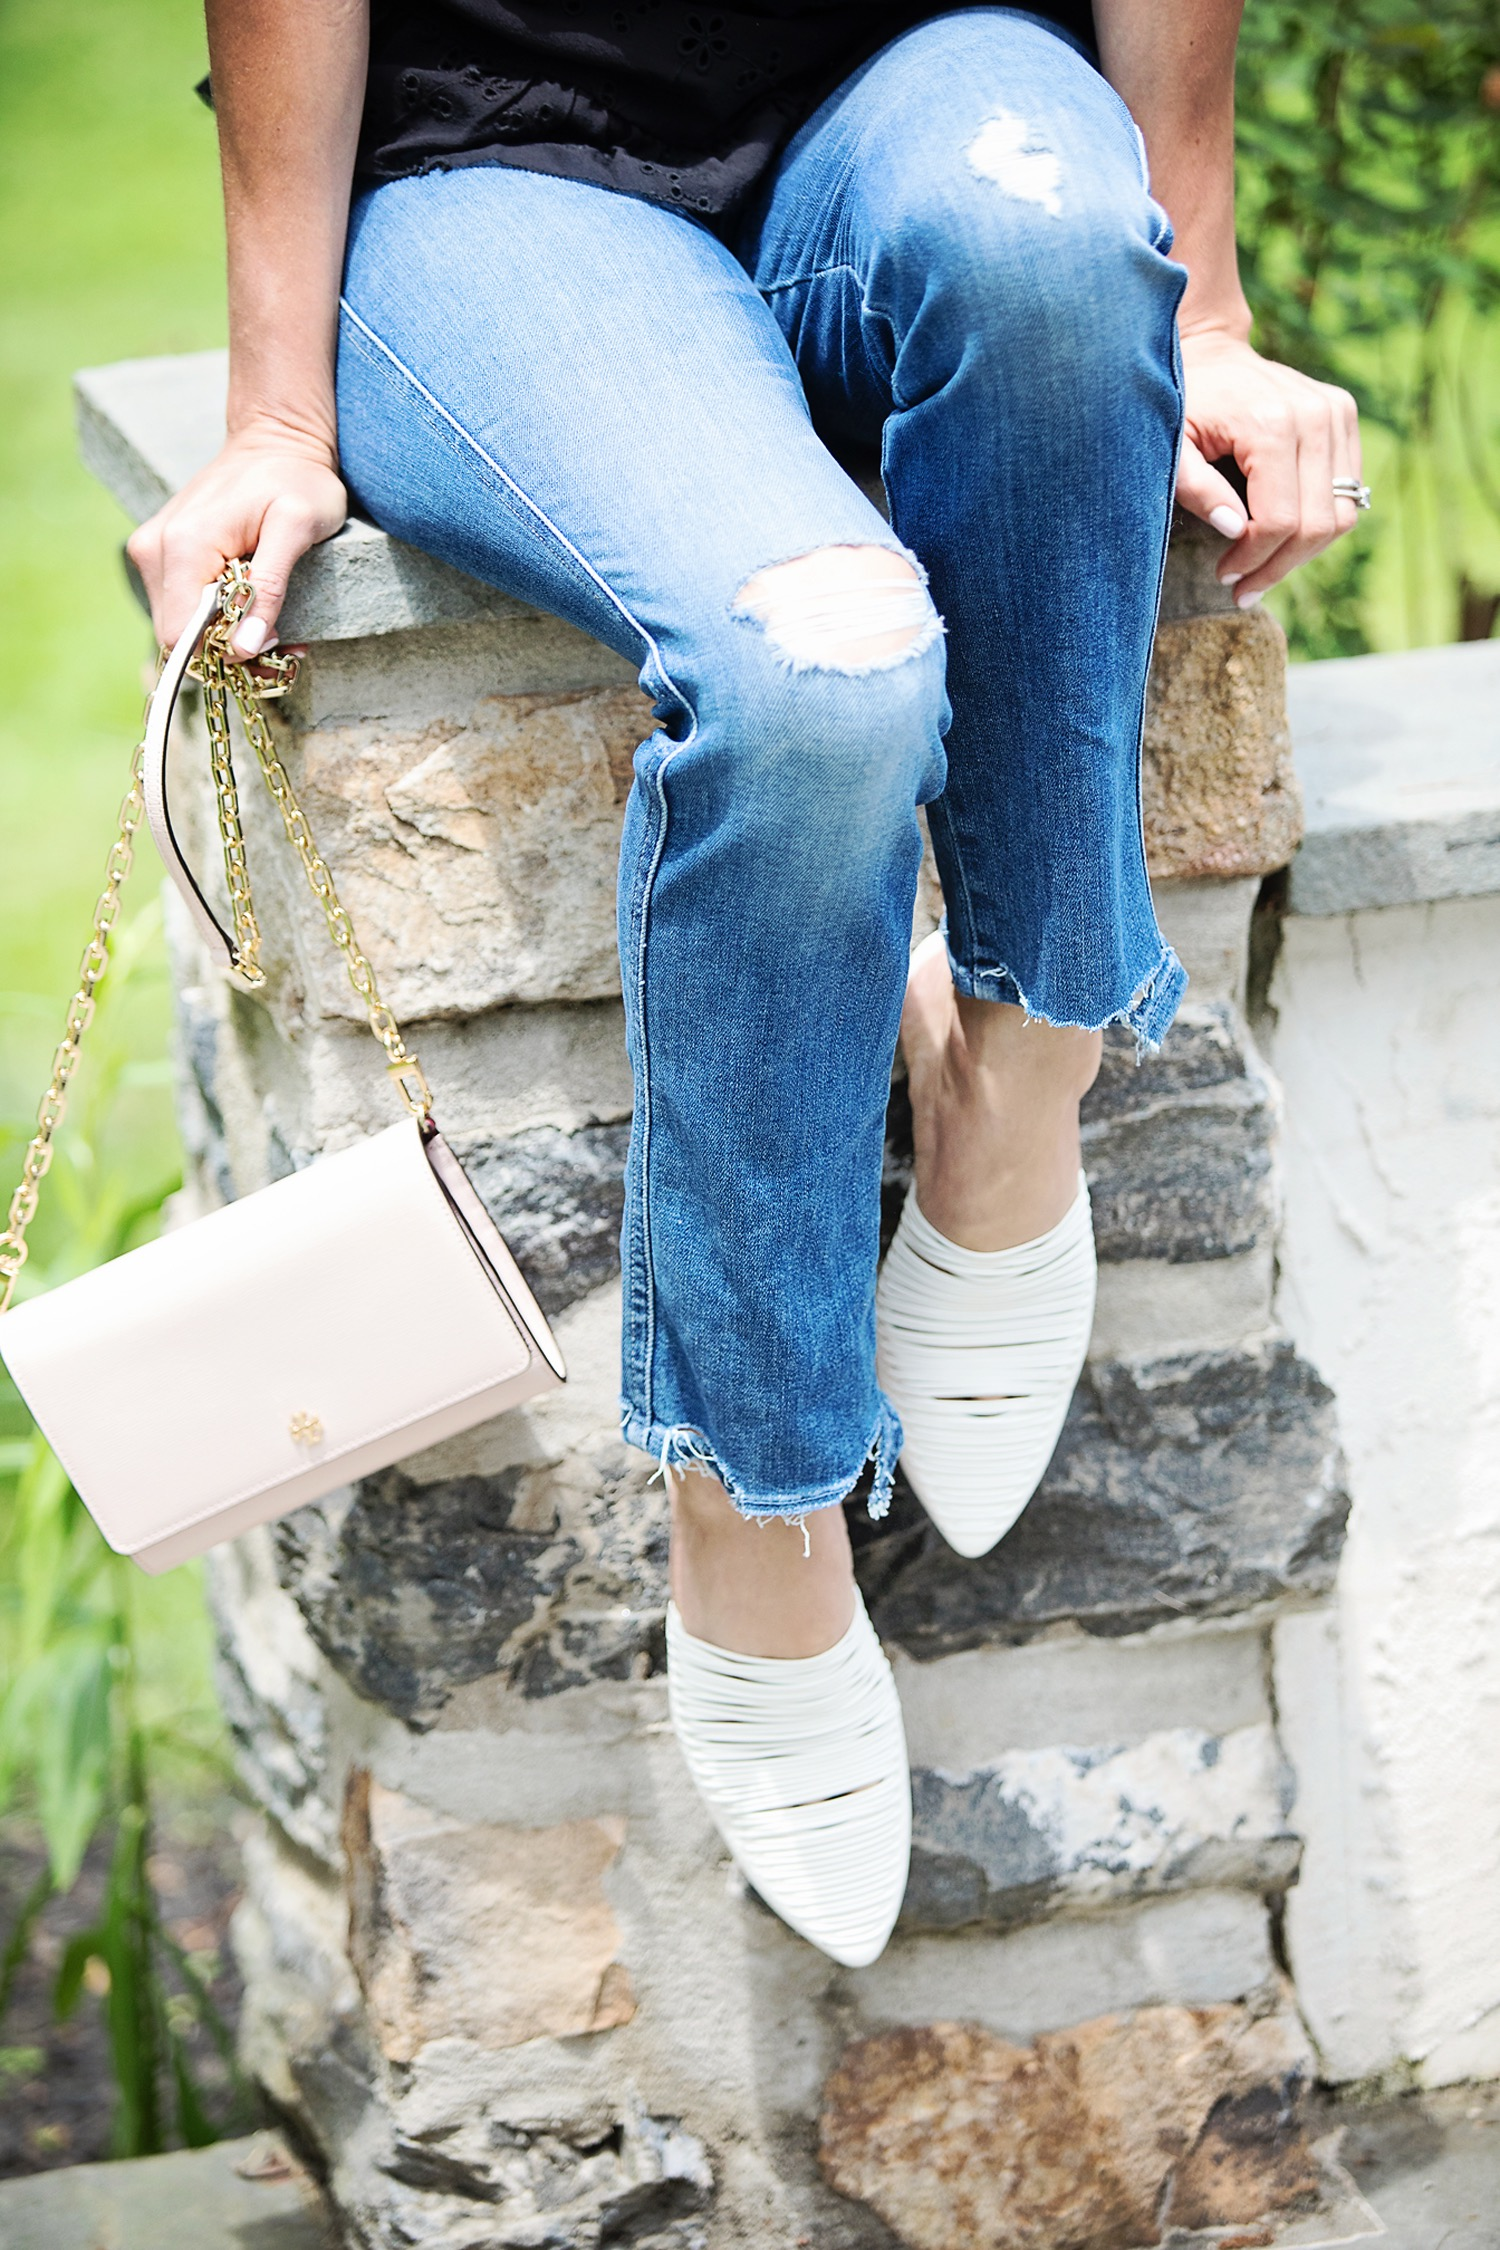 The Motherchic wearing tory burch mules and bag from Saks